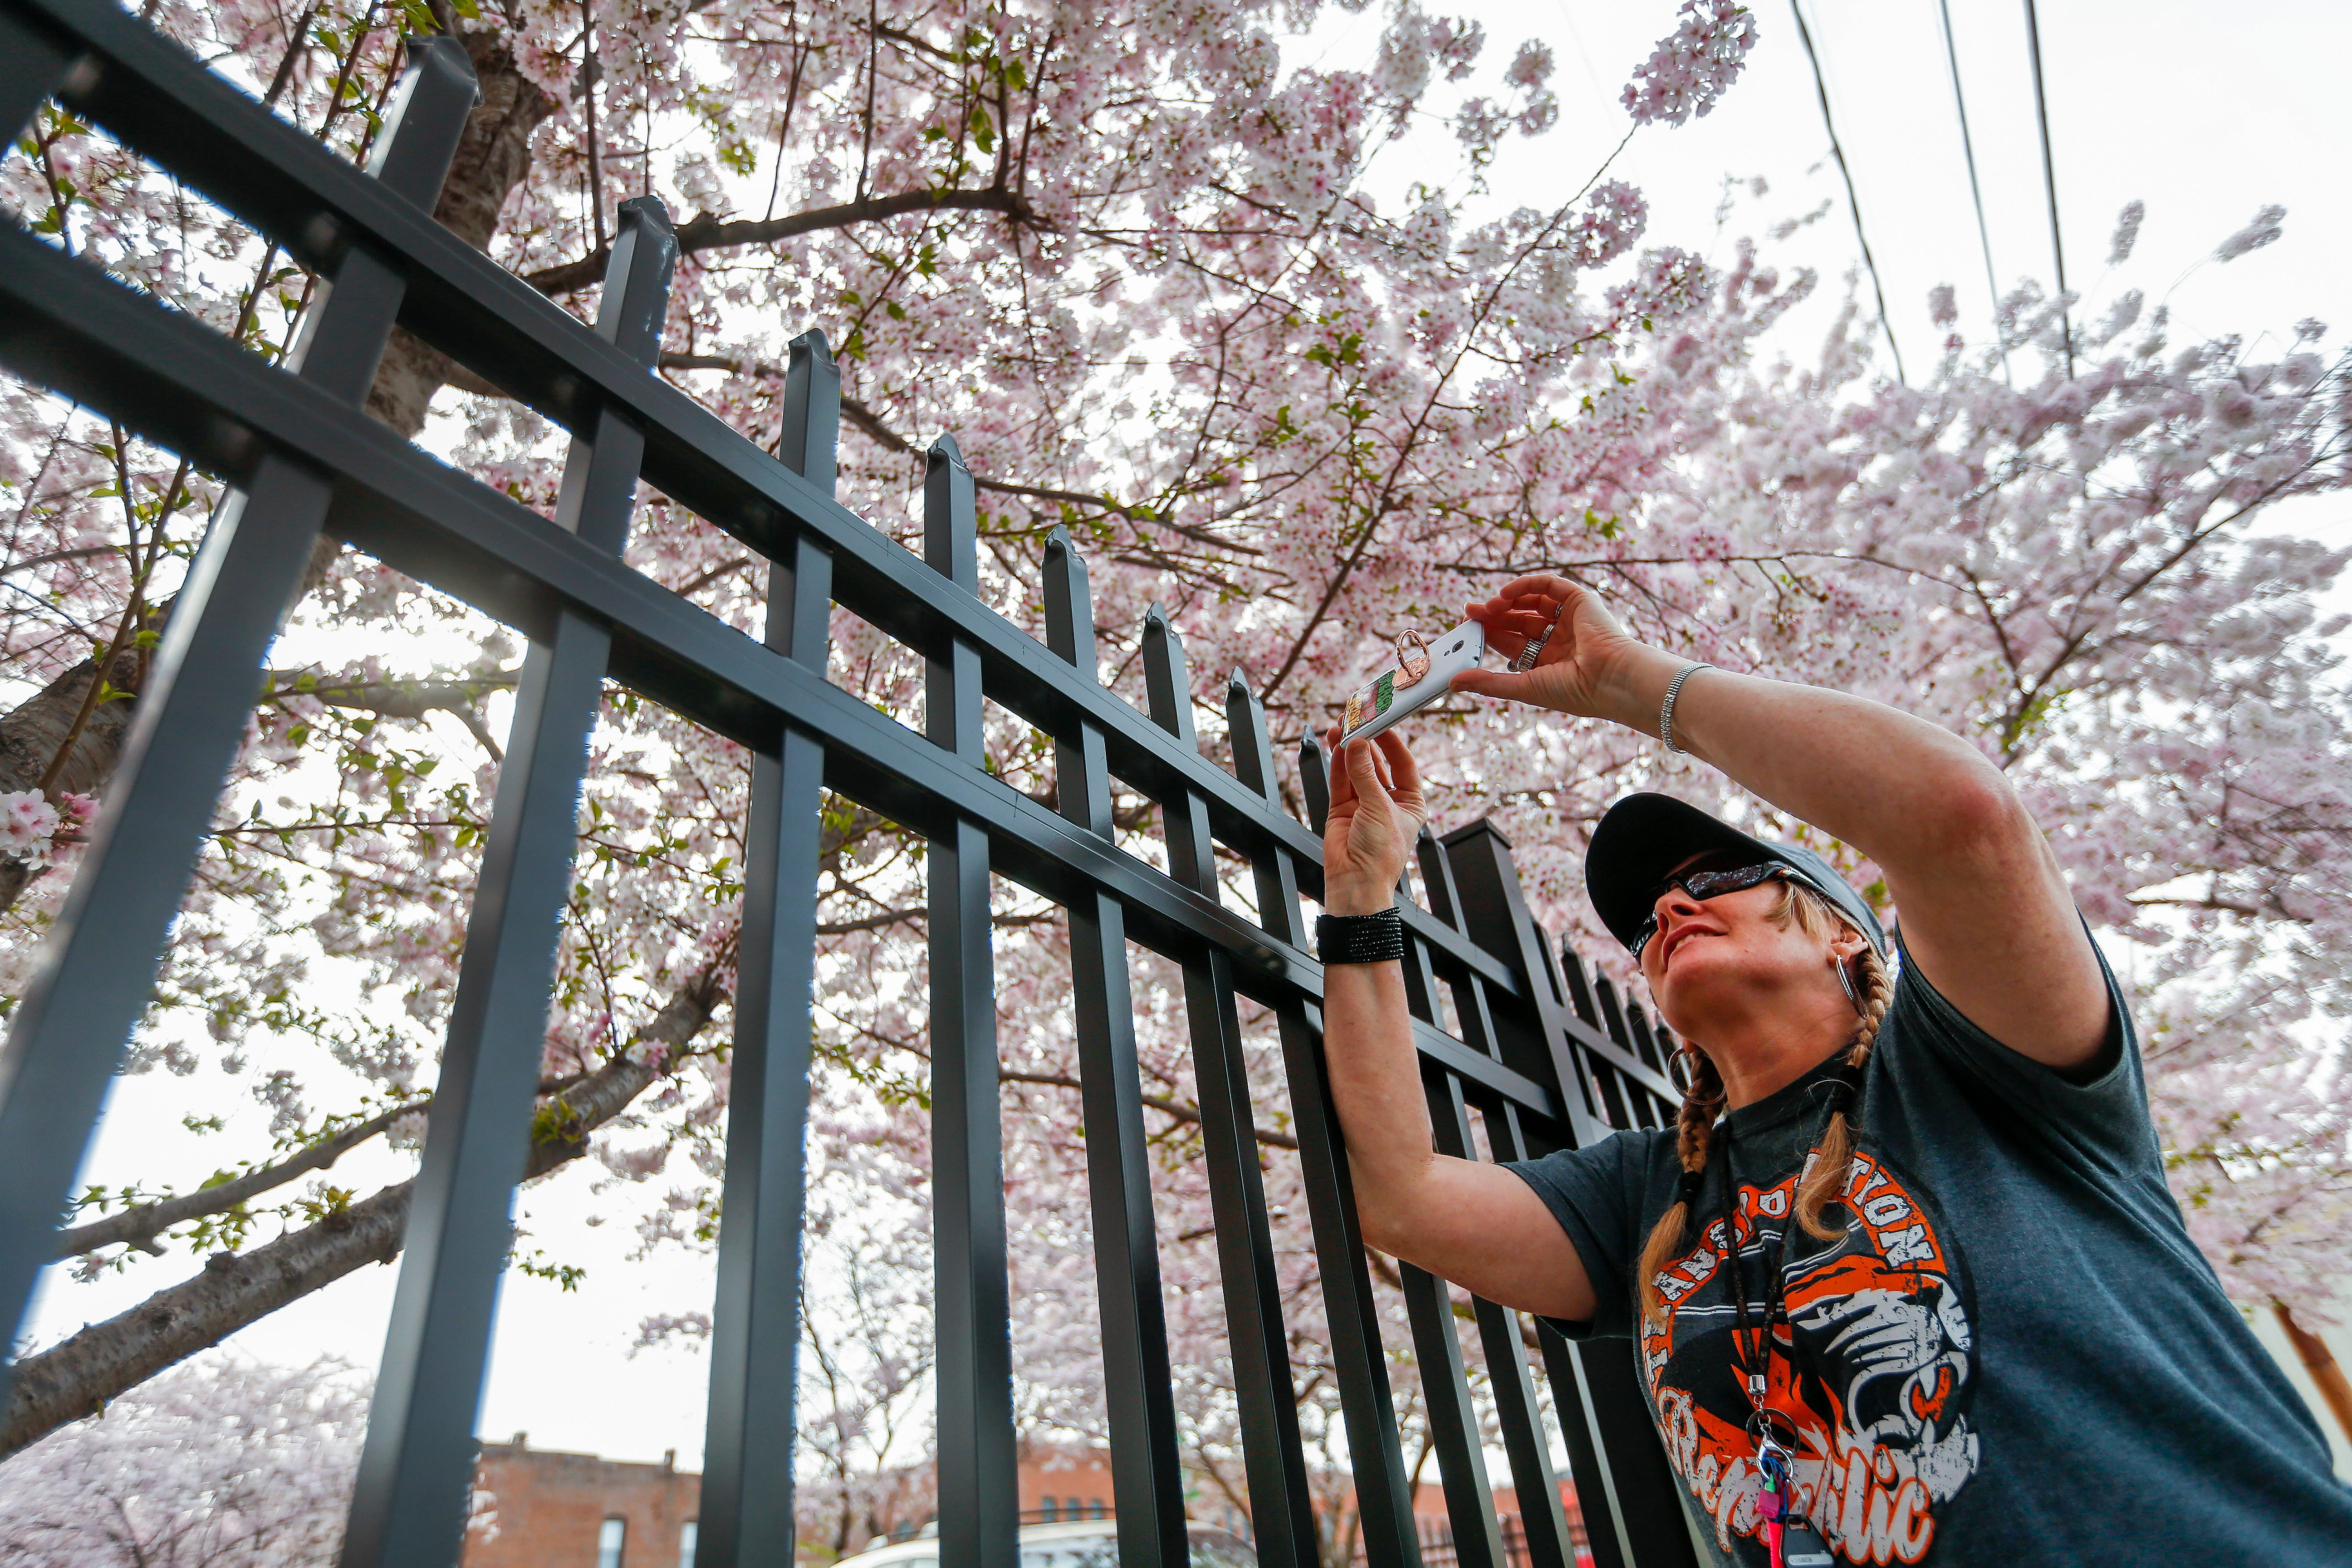 Christy Batey drove in from Republic to photograph the flowering trees at the intersection of College Street and Main Avenue in Downtown Springfield on Monday, April 8, 2019.